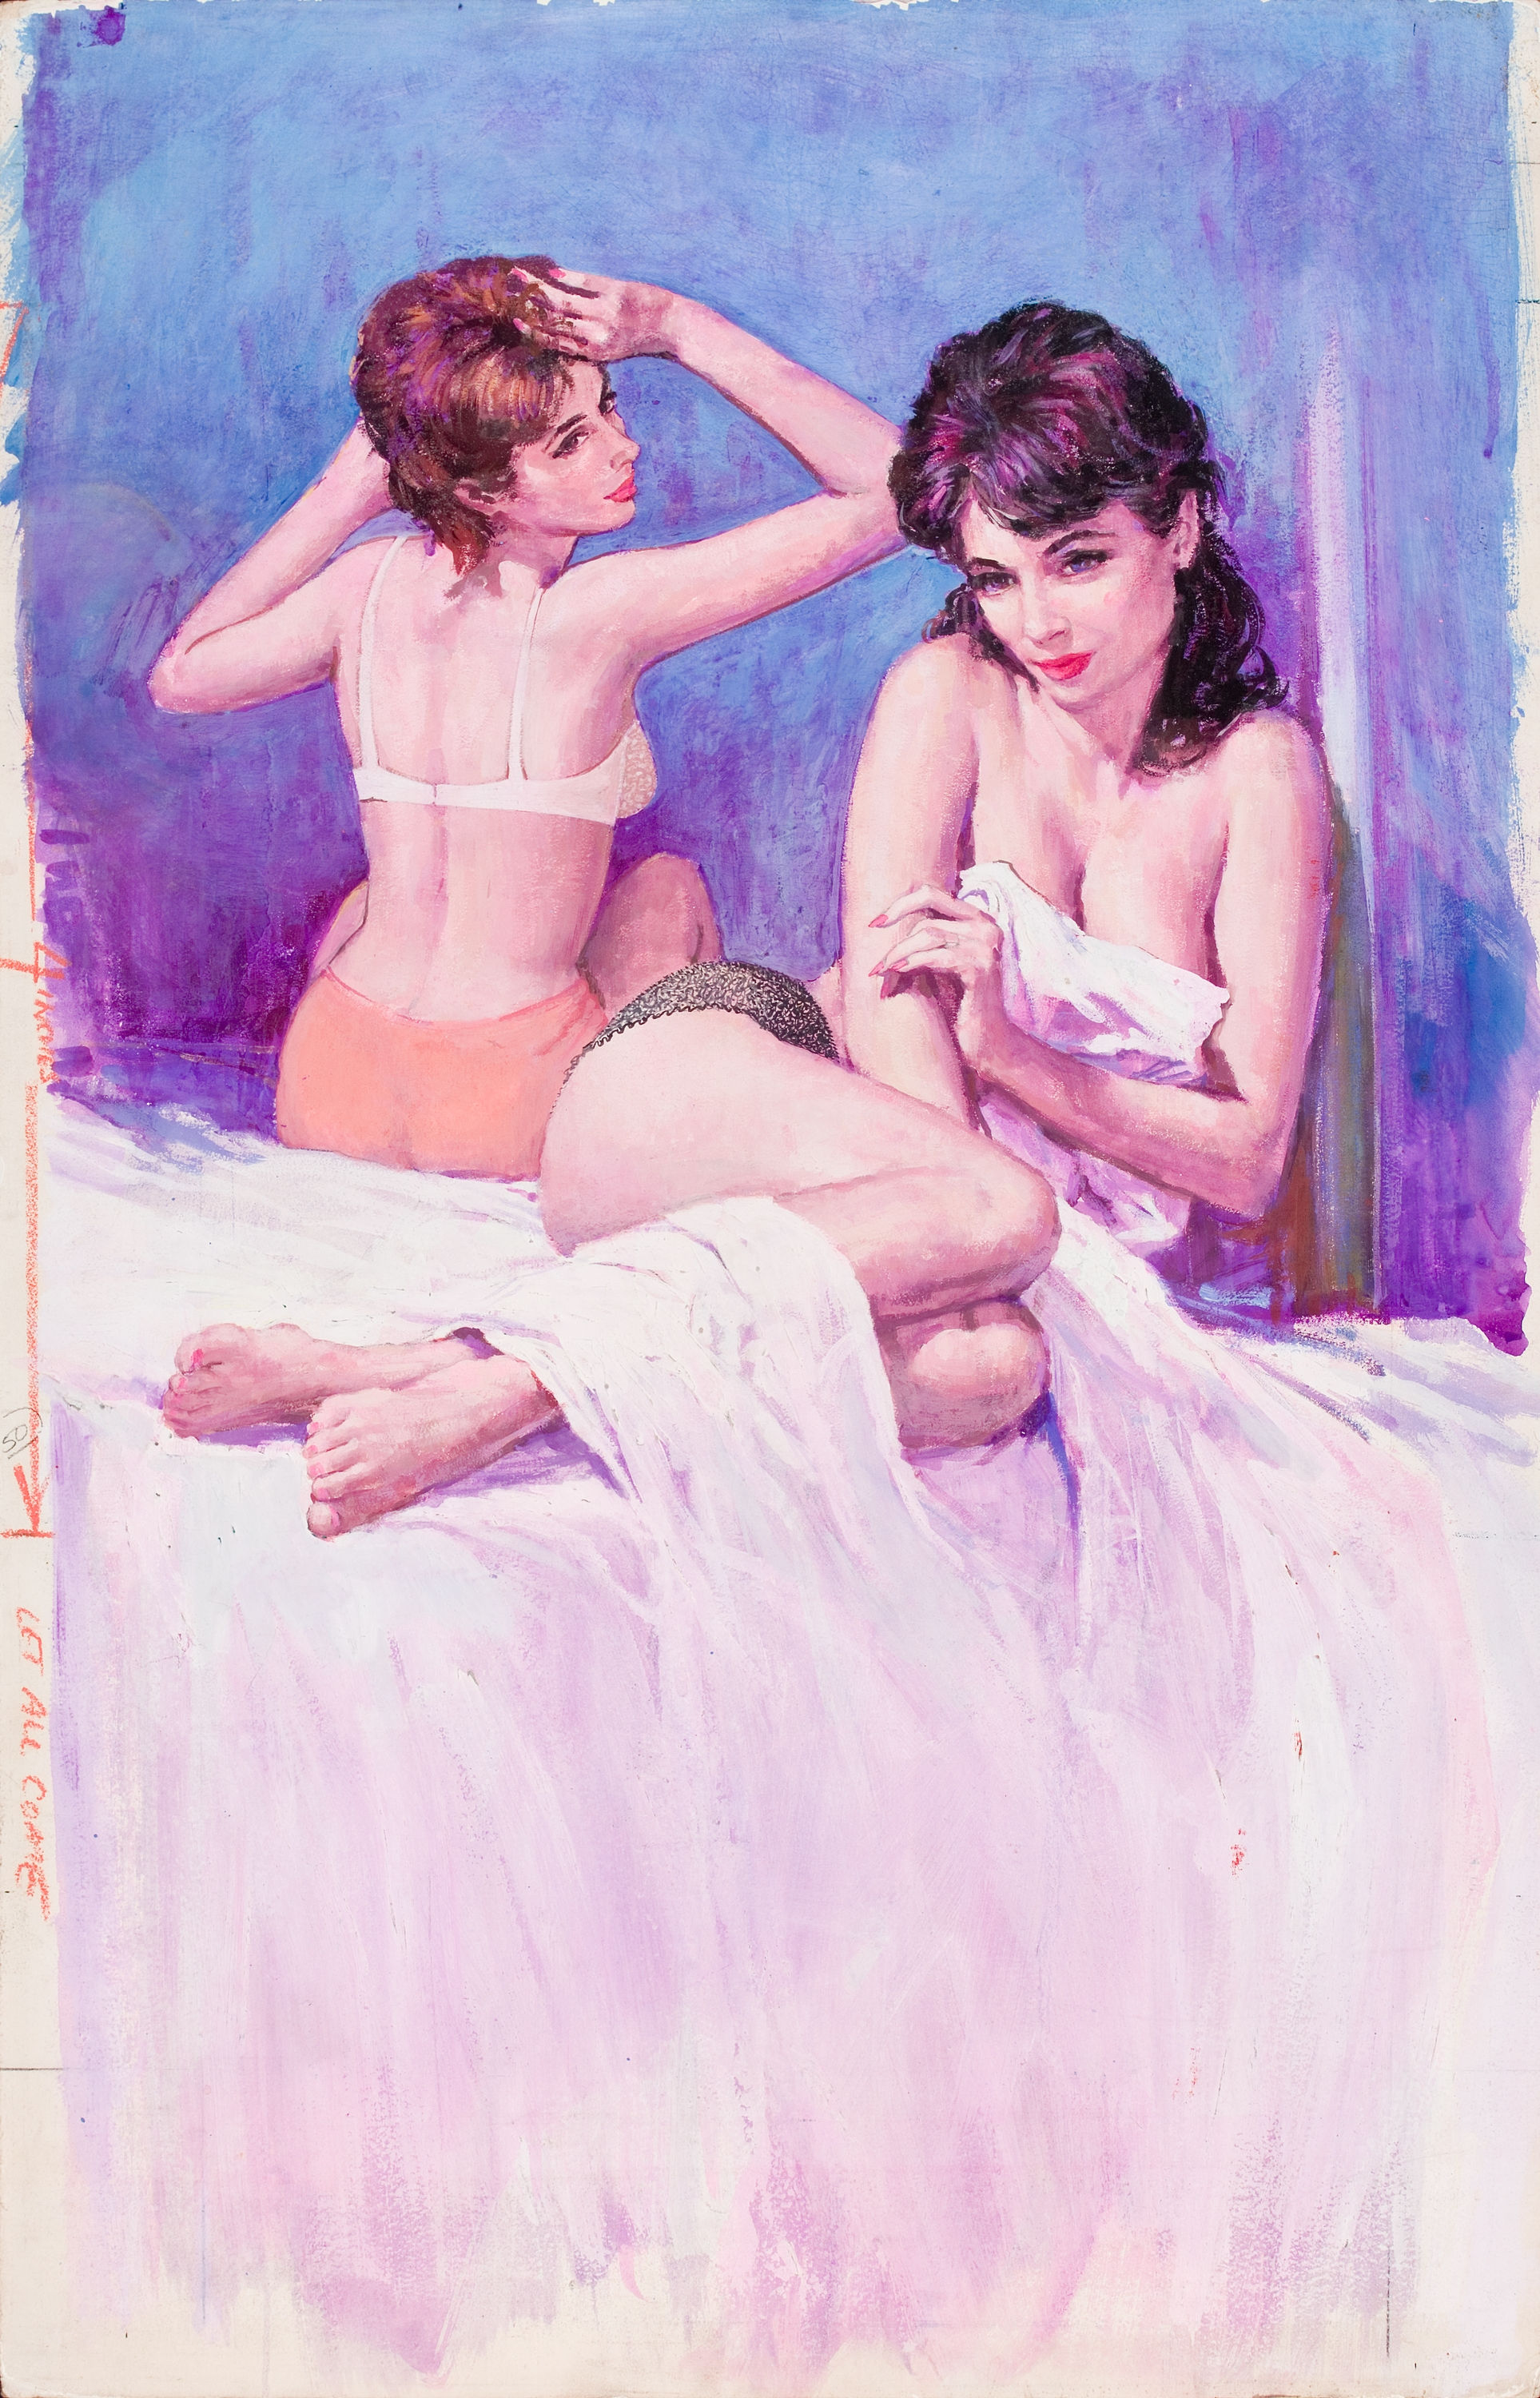 Out From Between The Sheets. Art by Victor Olson, Beacon Signal Books, Public domain via Wikimedia Commons.